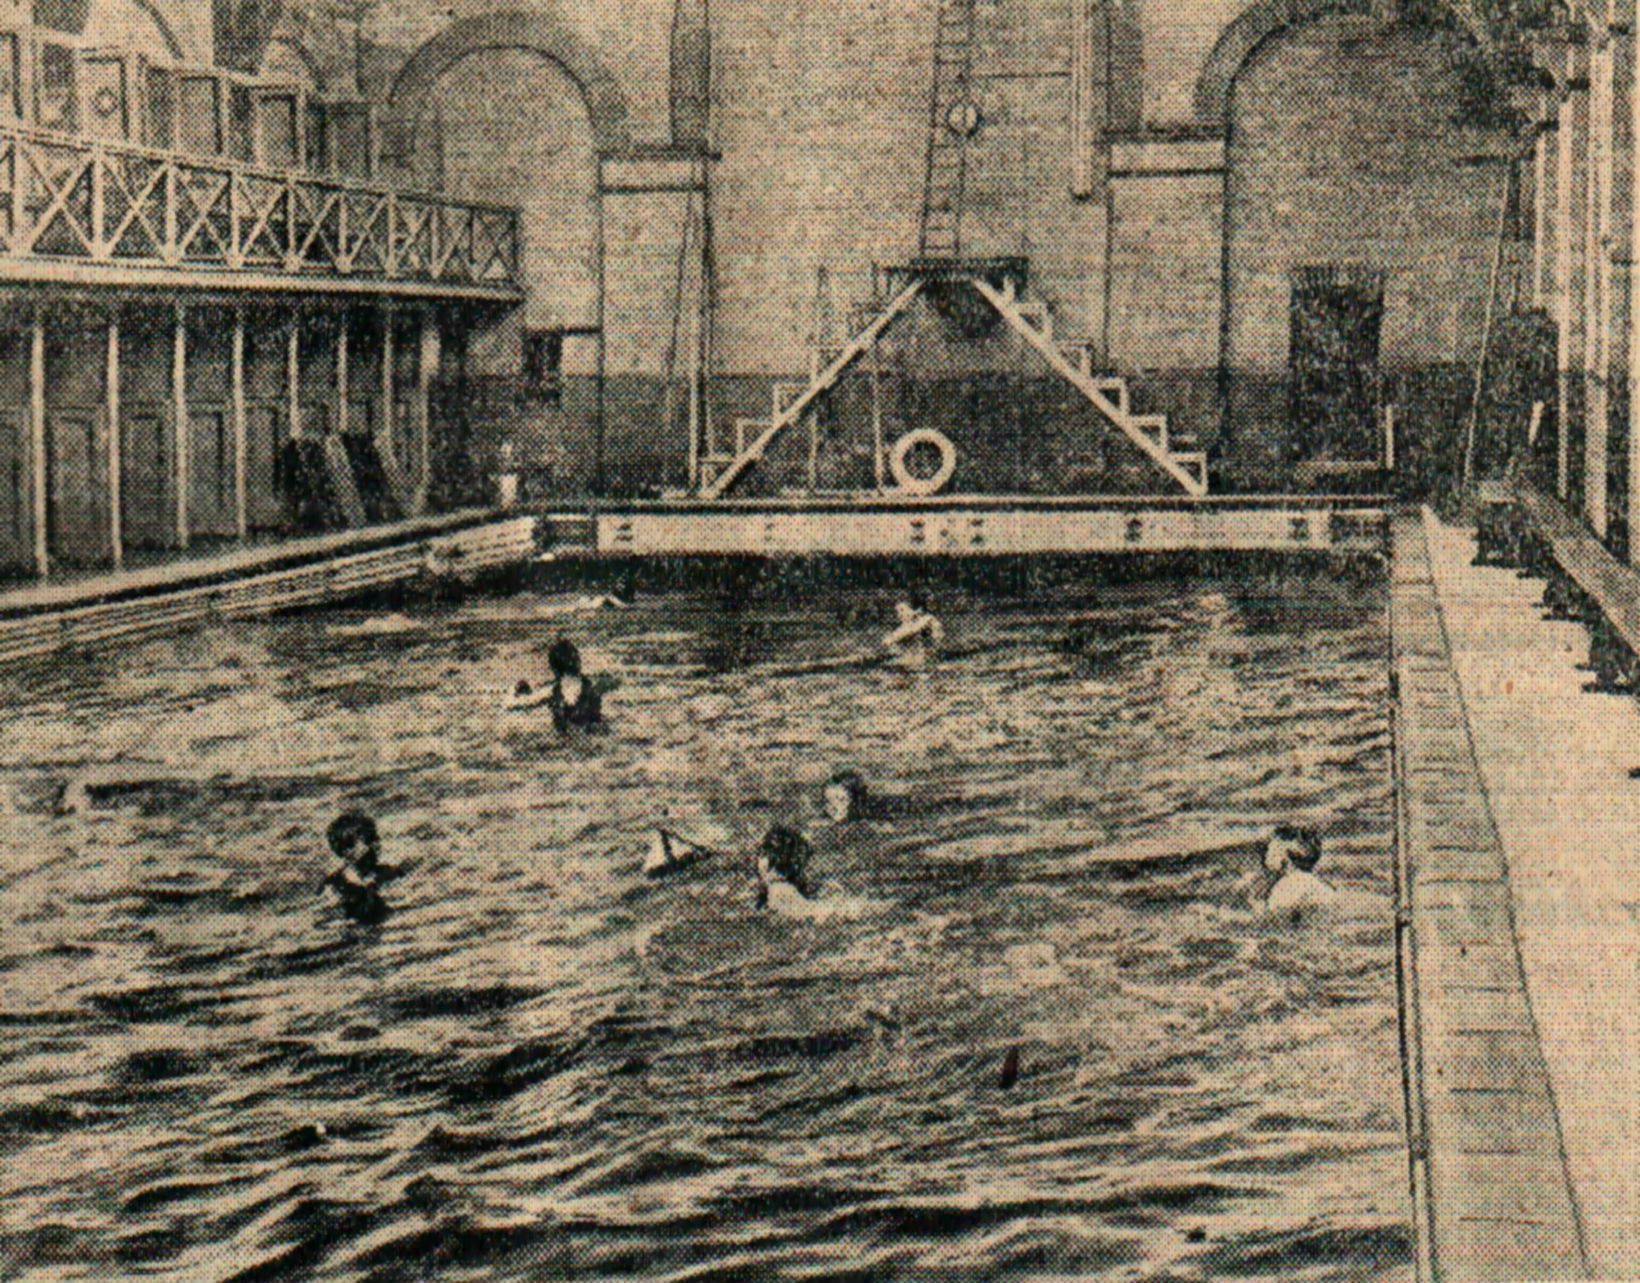 SWIMMING SESSION: Inside Saltburn's brine baths in 1913 – there's an upstairs gallery and a tall diving board at the far end.